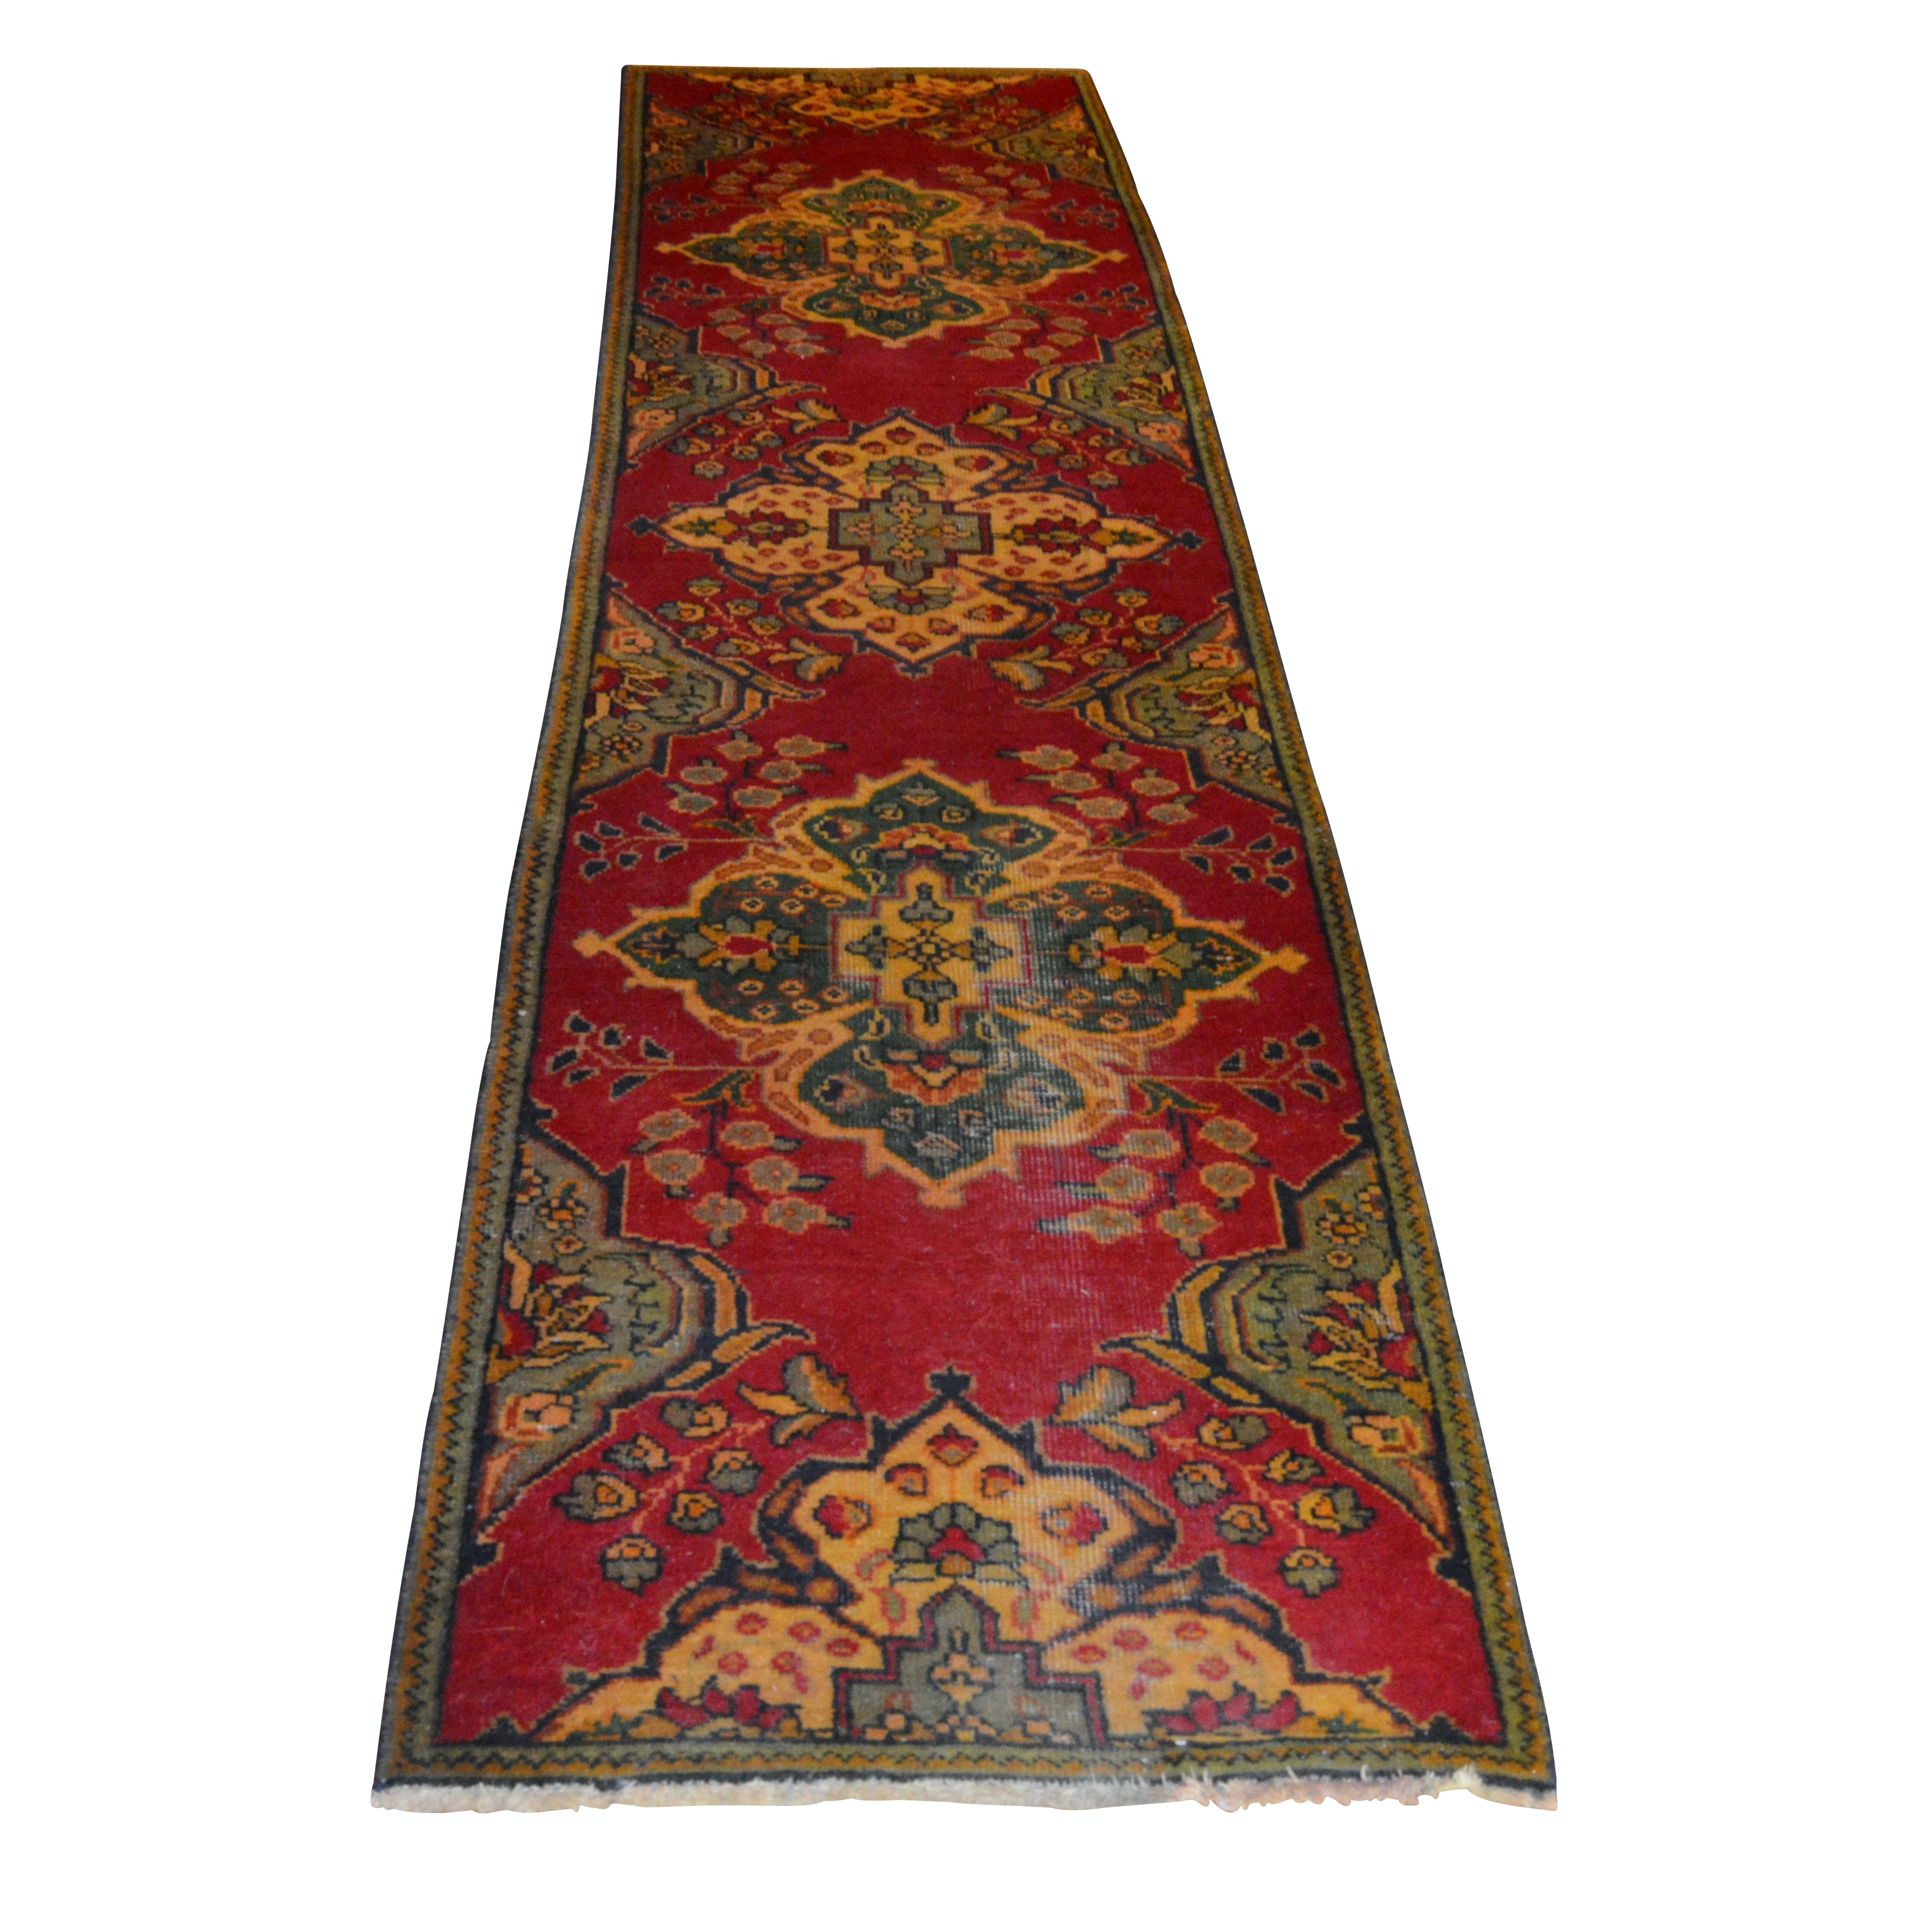 Hand-Knotted Persian Tabriz Style Wool Carpet Runner